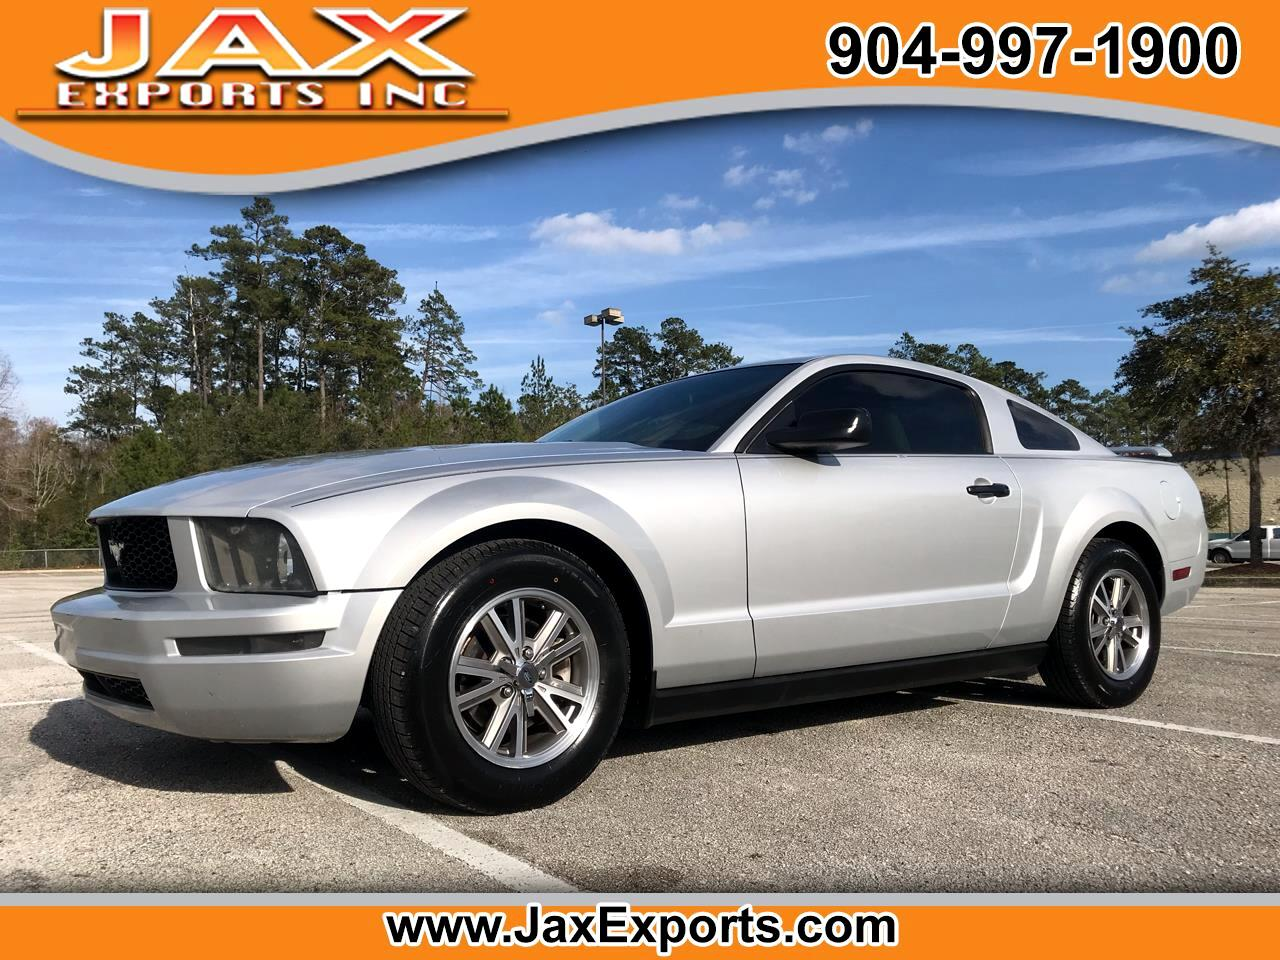 2005 Ford Mustang 2dr Cpe Premium